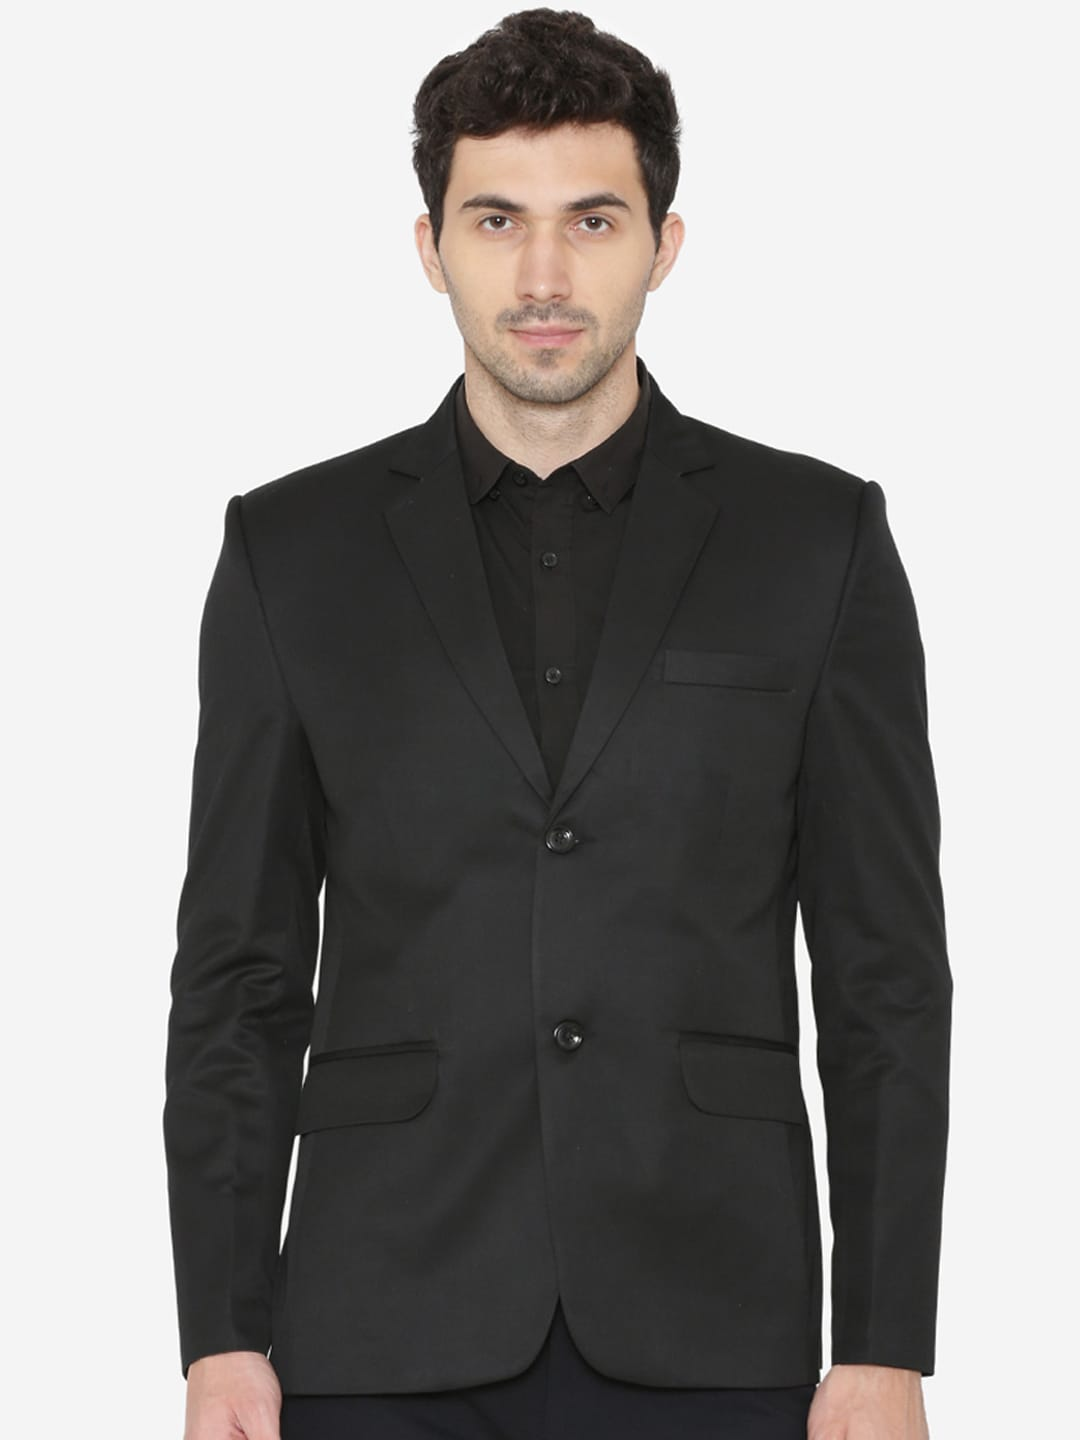 Wintage Men Black Solid Tailored Fit Single Breasted Formal Blazer